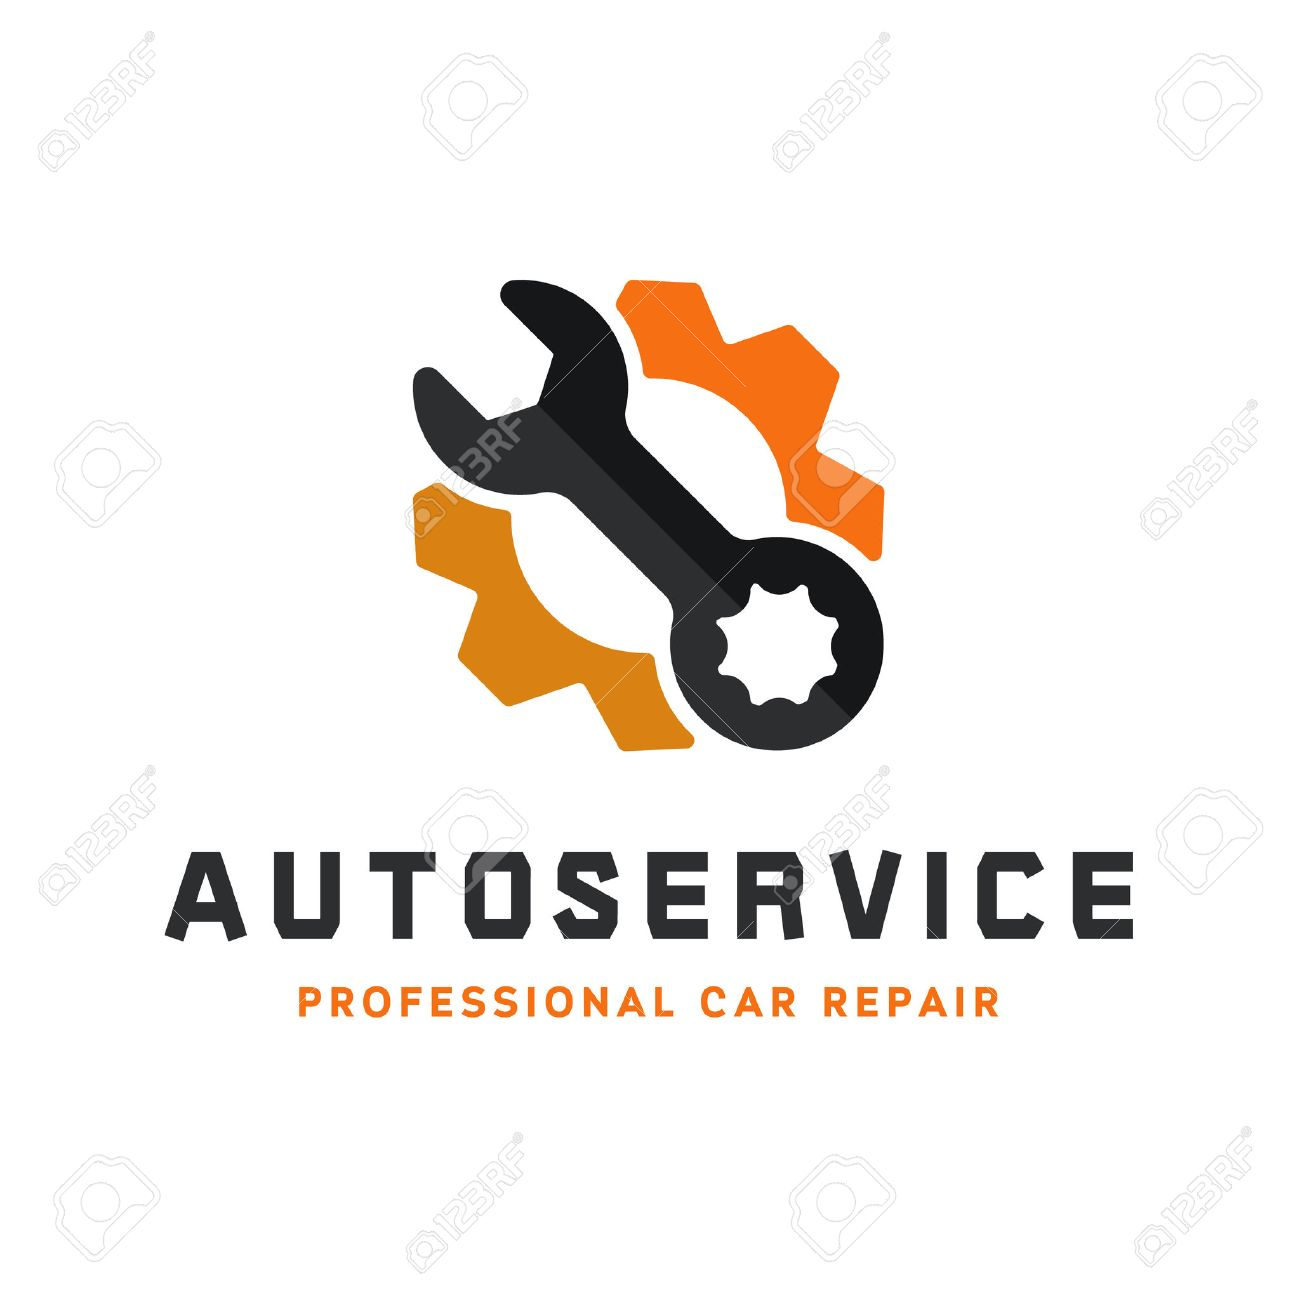 Service auto repair, wrench, logo sign flat - 52551182